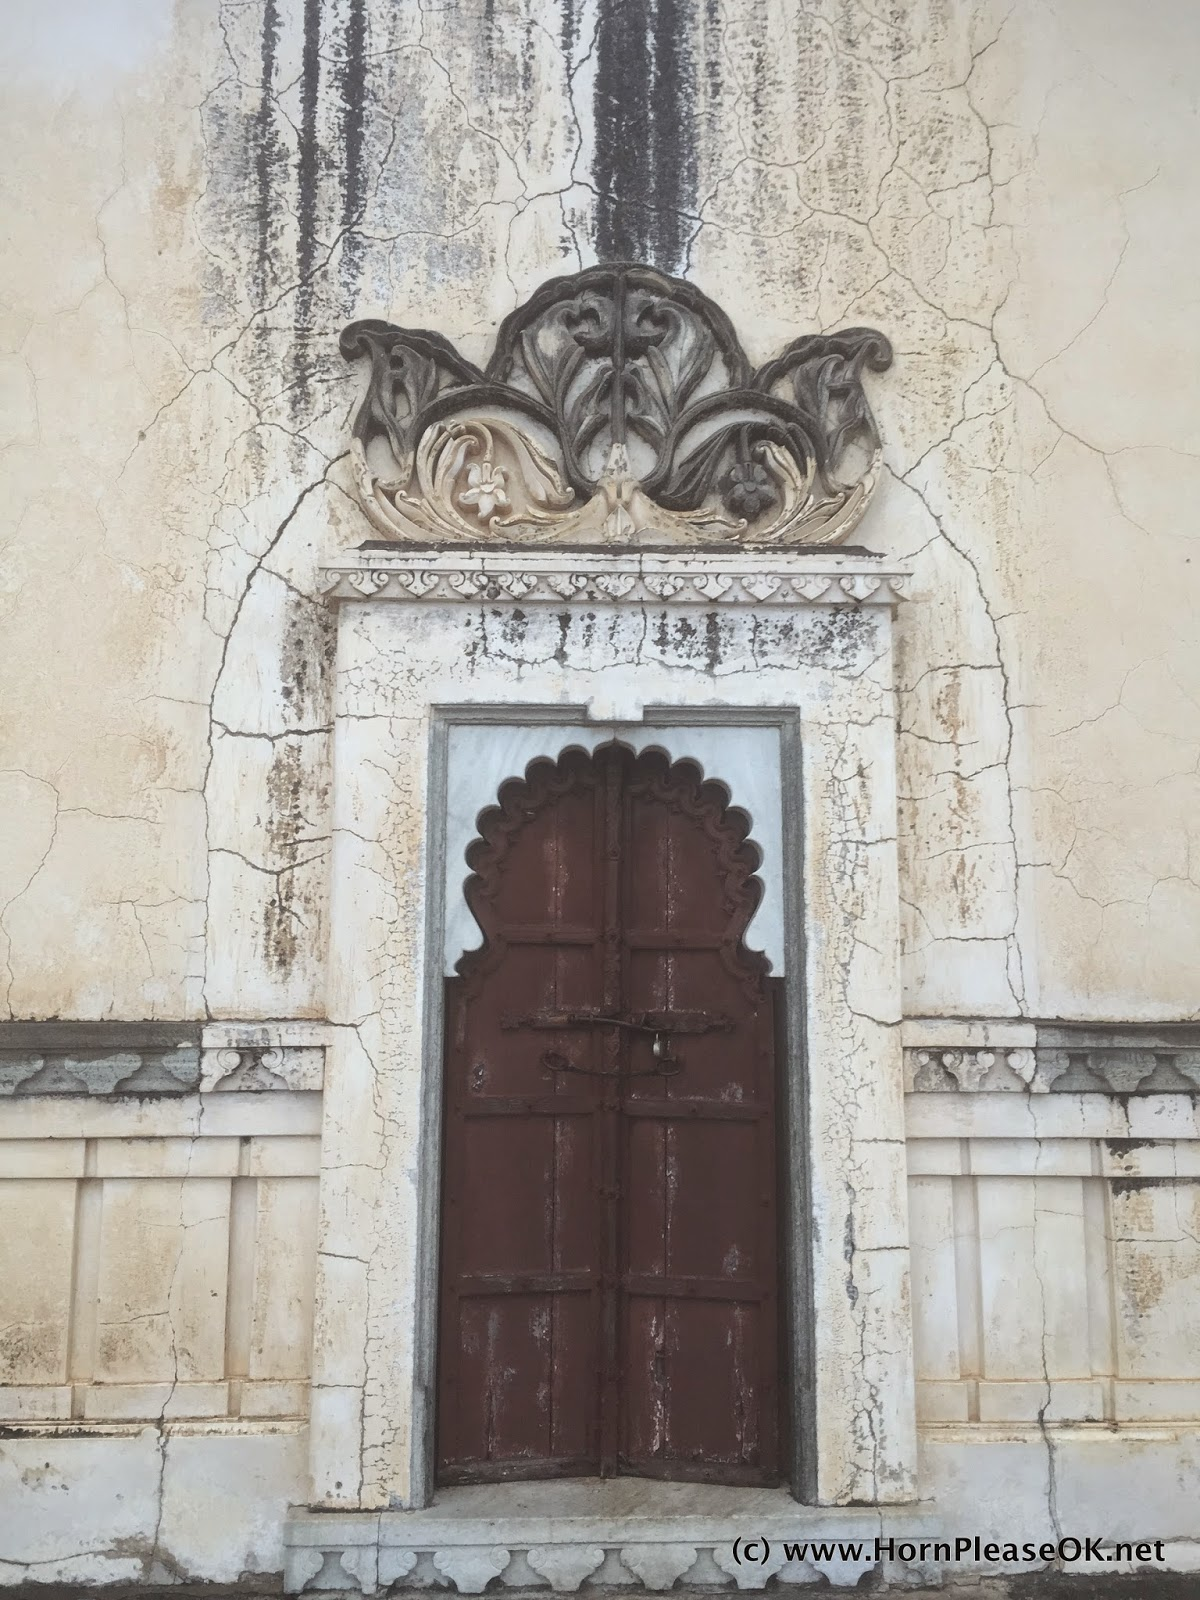 One of the entrances to Badal Mahal